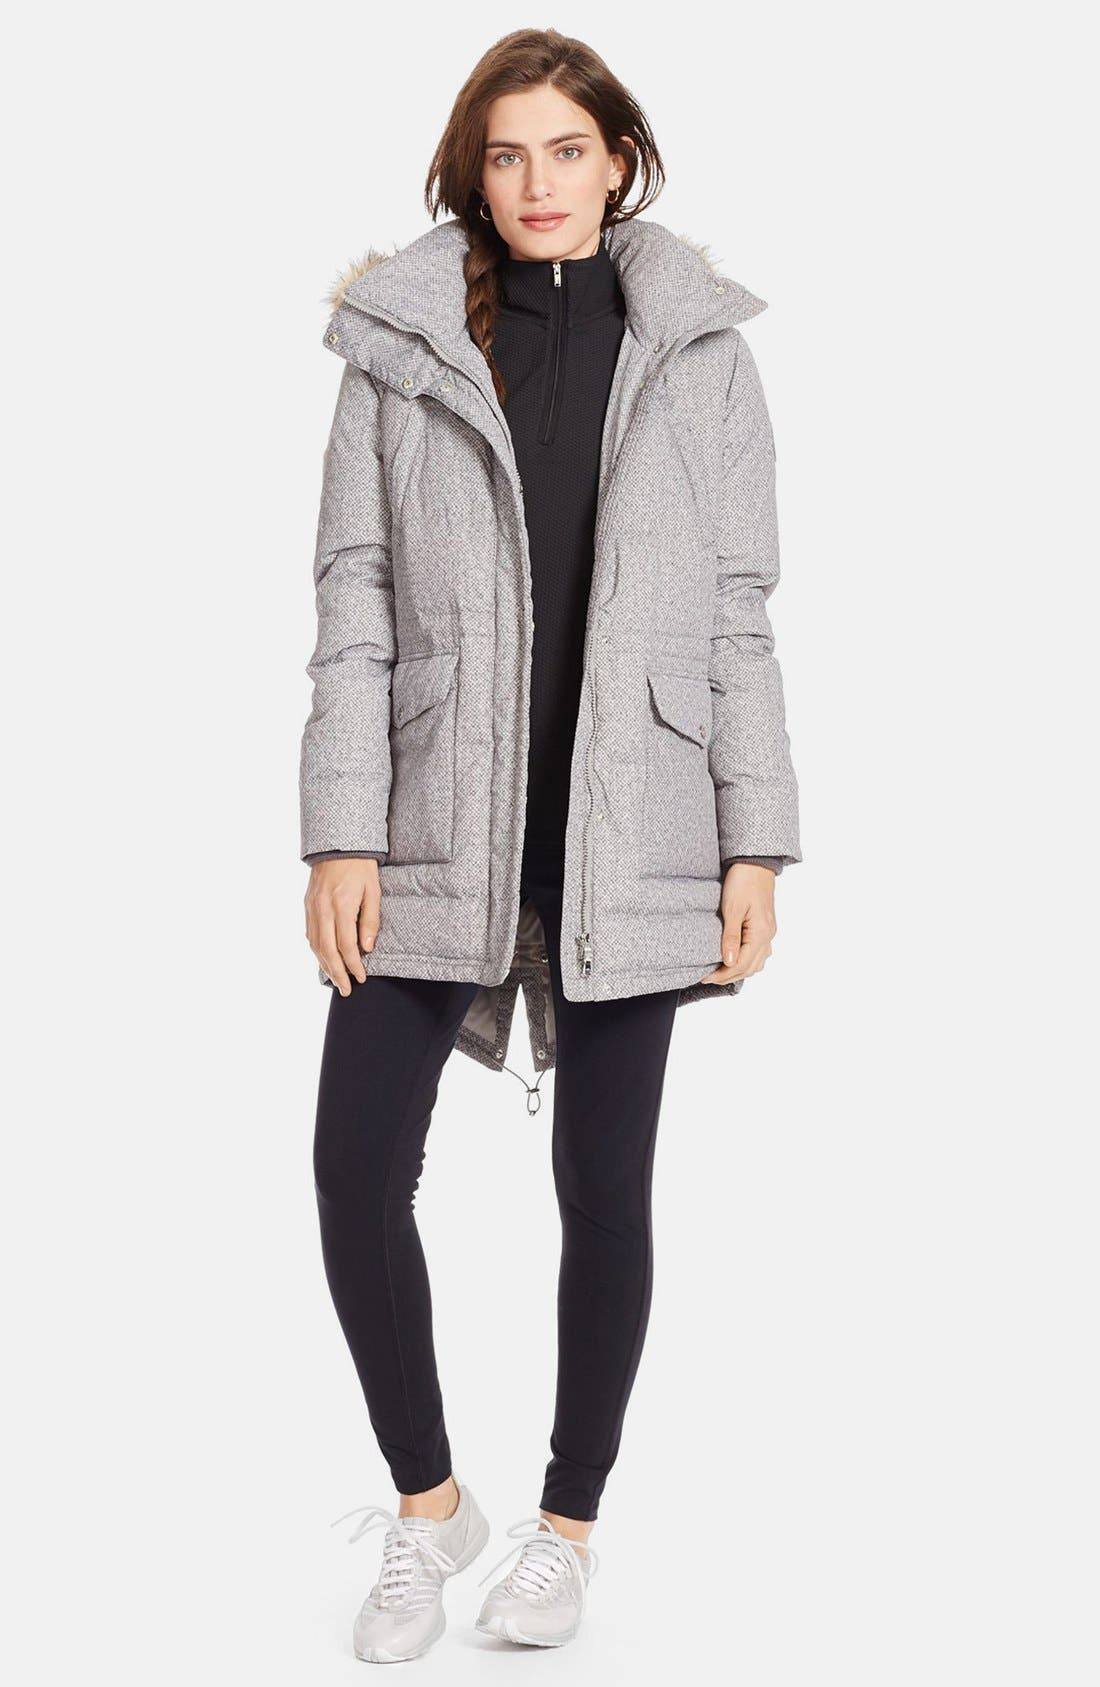 Alternate Image 1 Selected - Lauren Ralph Lauren Faux Fur Trim Tweed Print Anorak with Down & Feather Fill (Online Only)